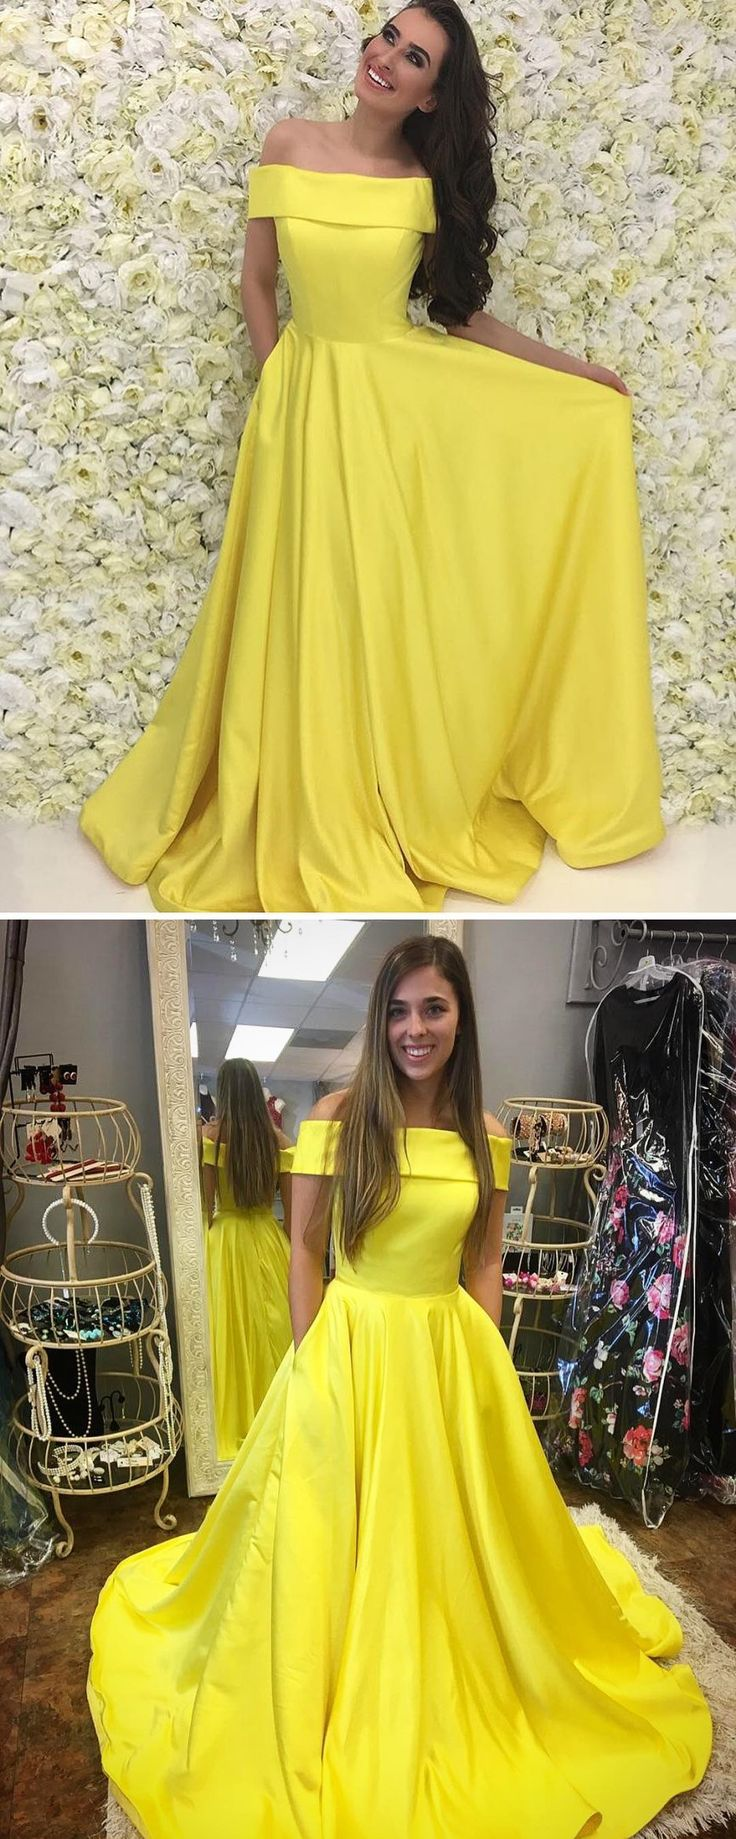 2018 off the shoulder yellow long prom dress, gorgeous yellow long graduation dress yellow dress